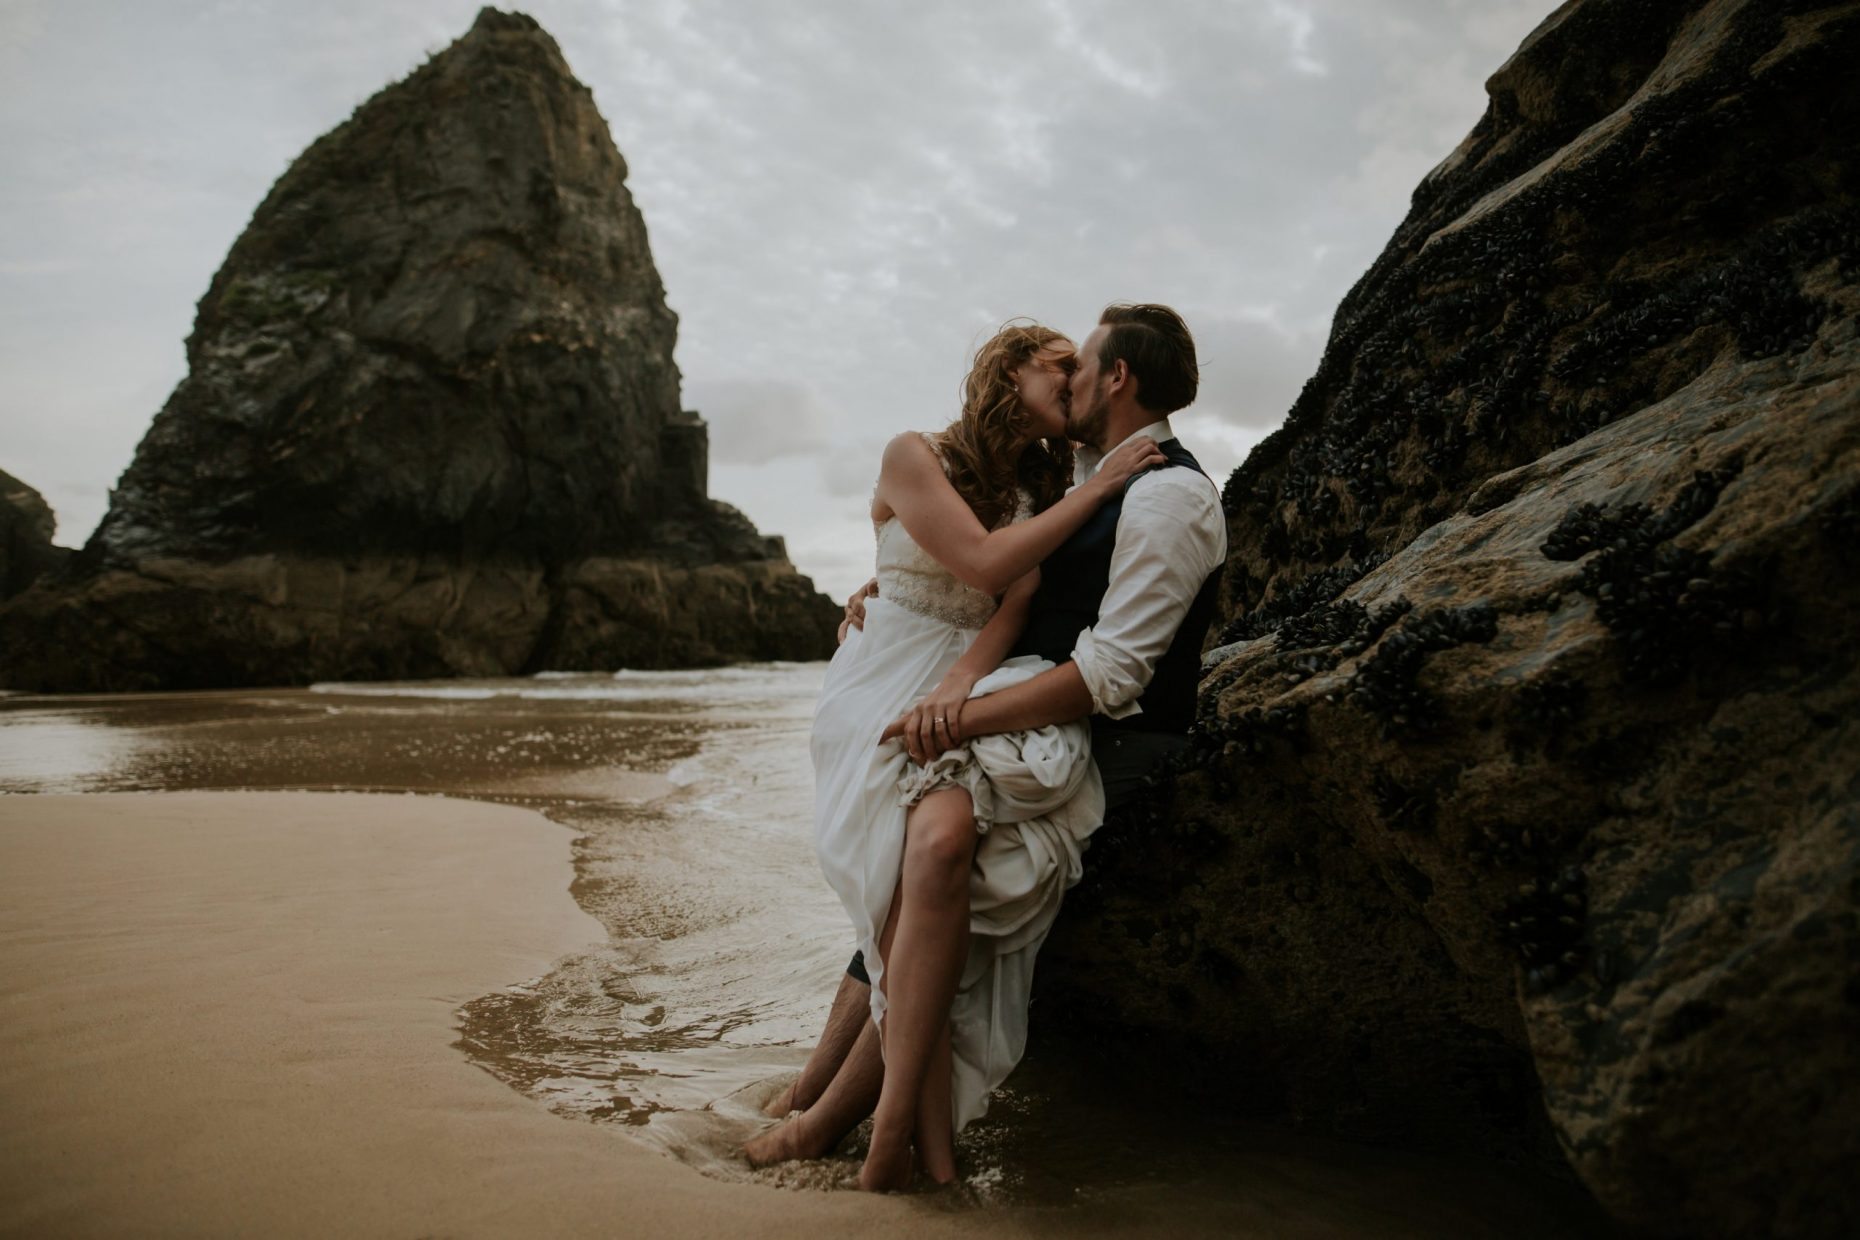 A bride sits on her grooms lap on a rock, they are barefoot and the waves crash around them as they kiss